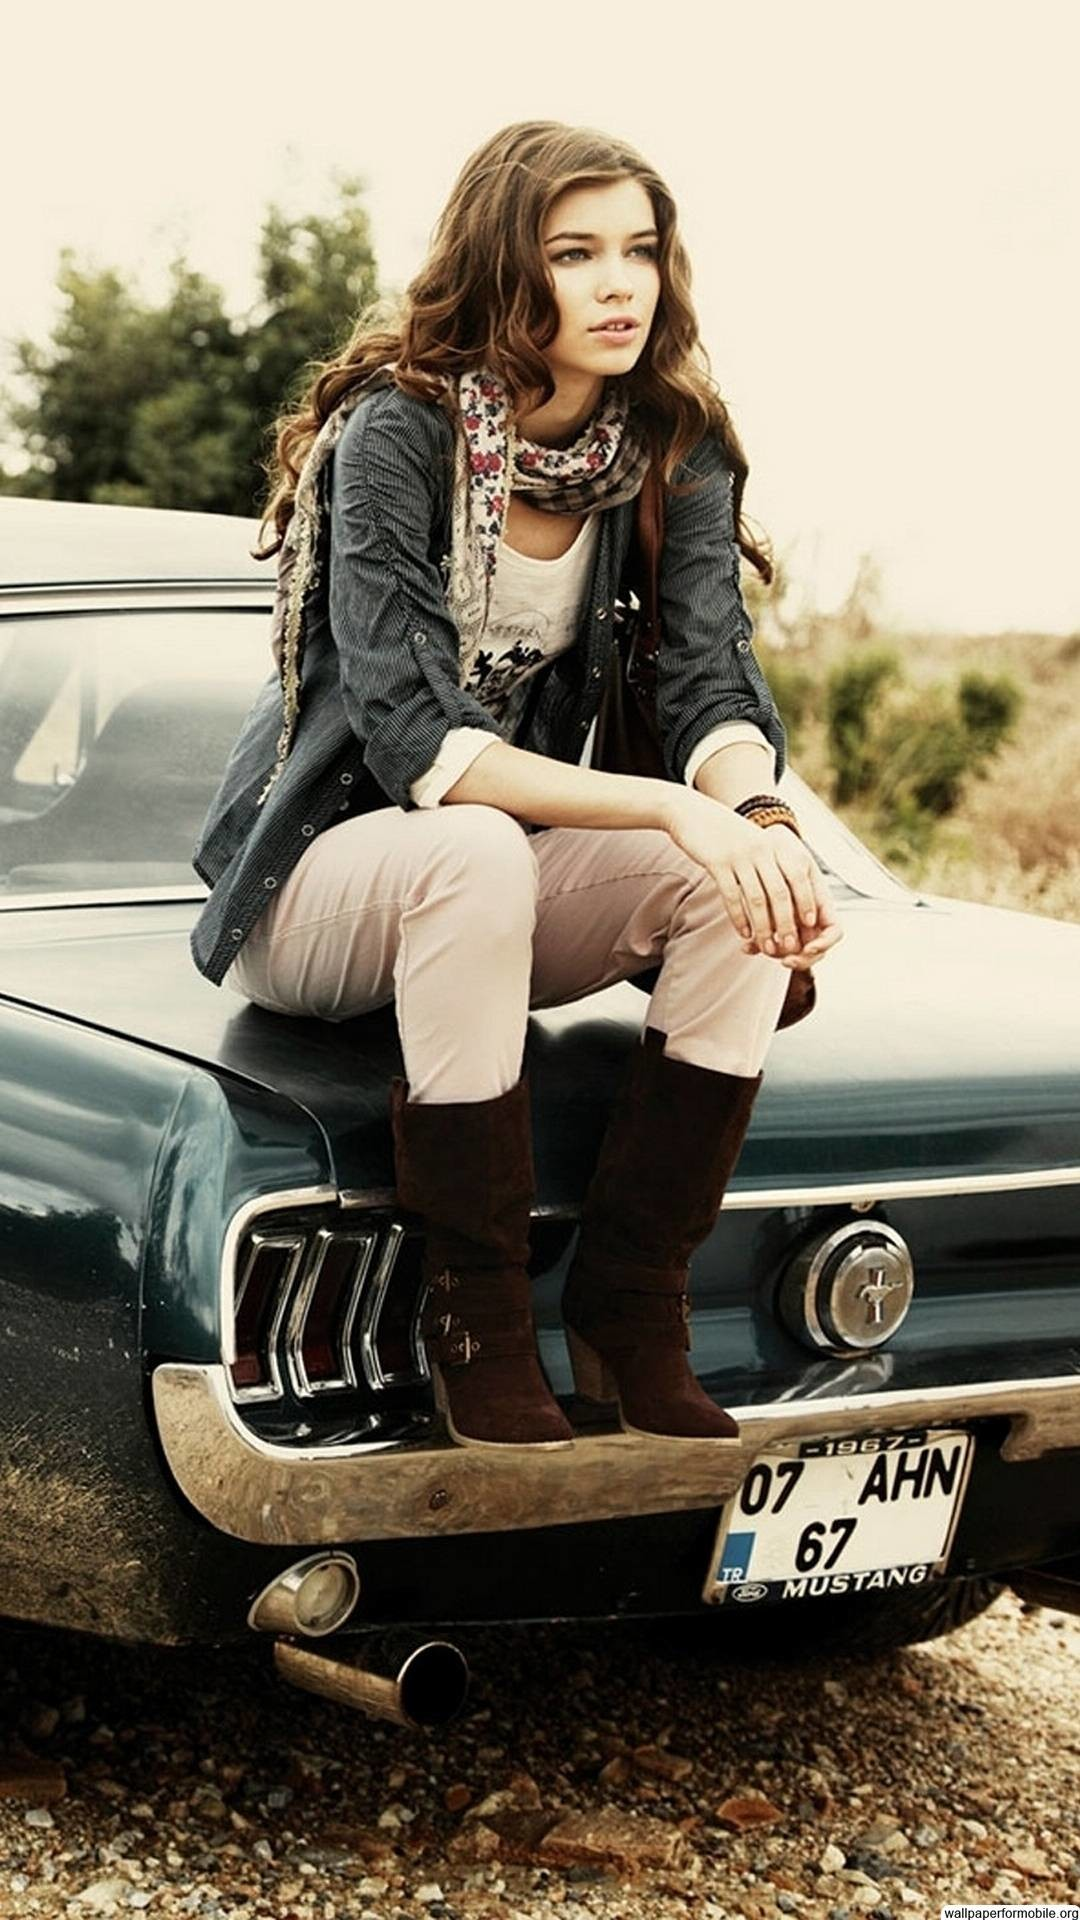 girls and muscle cars wallpaper …